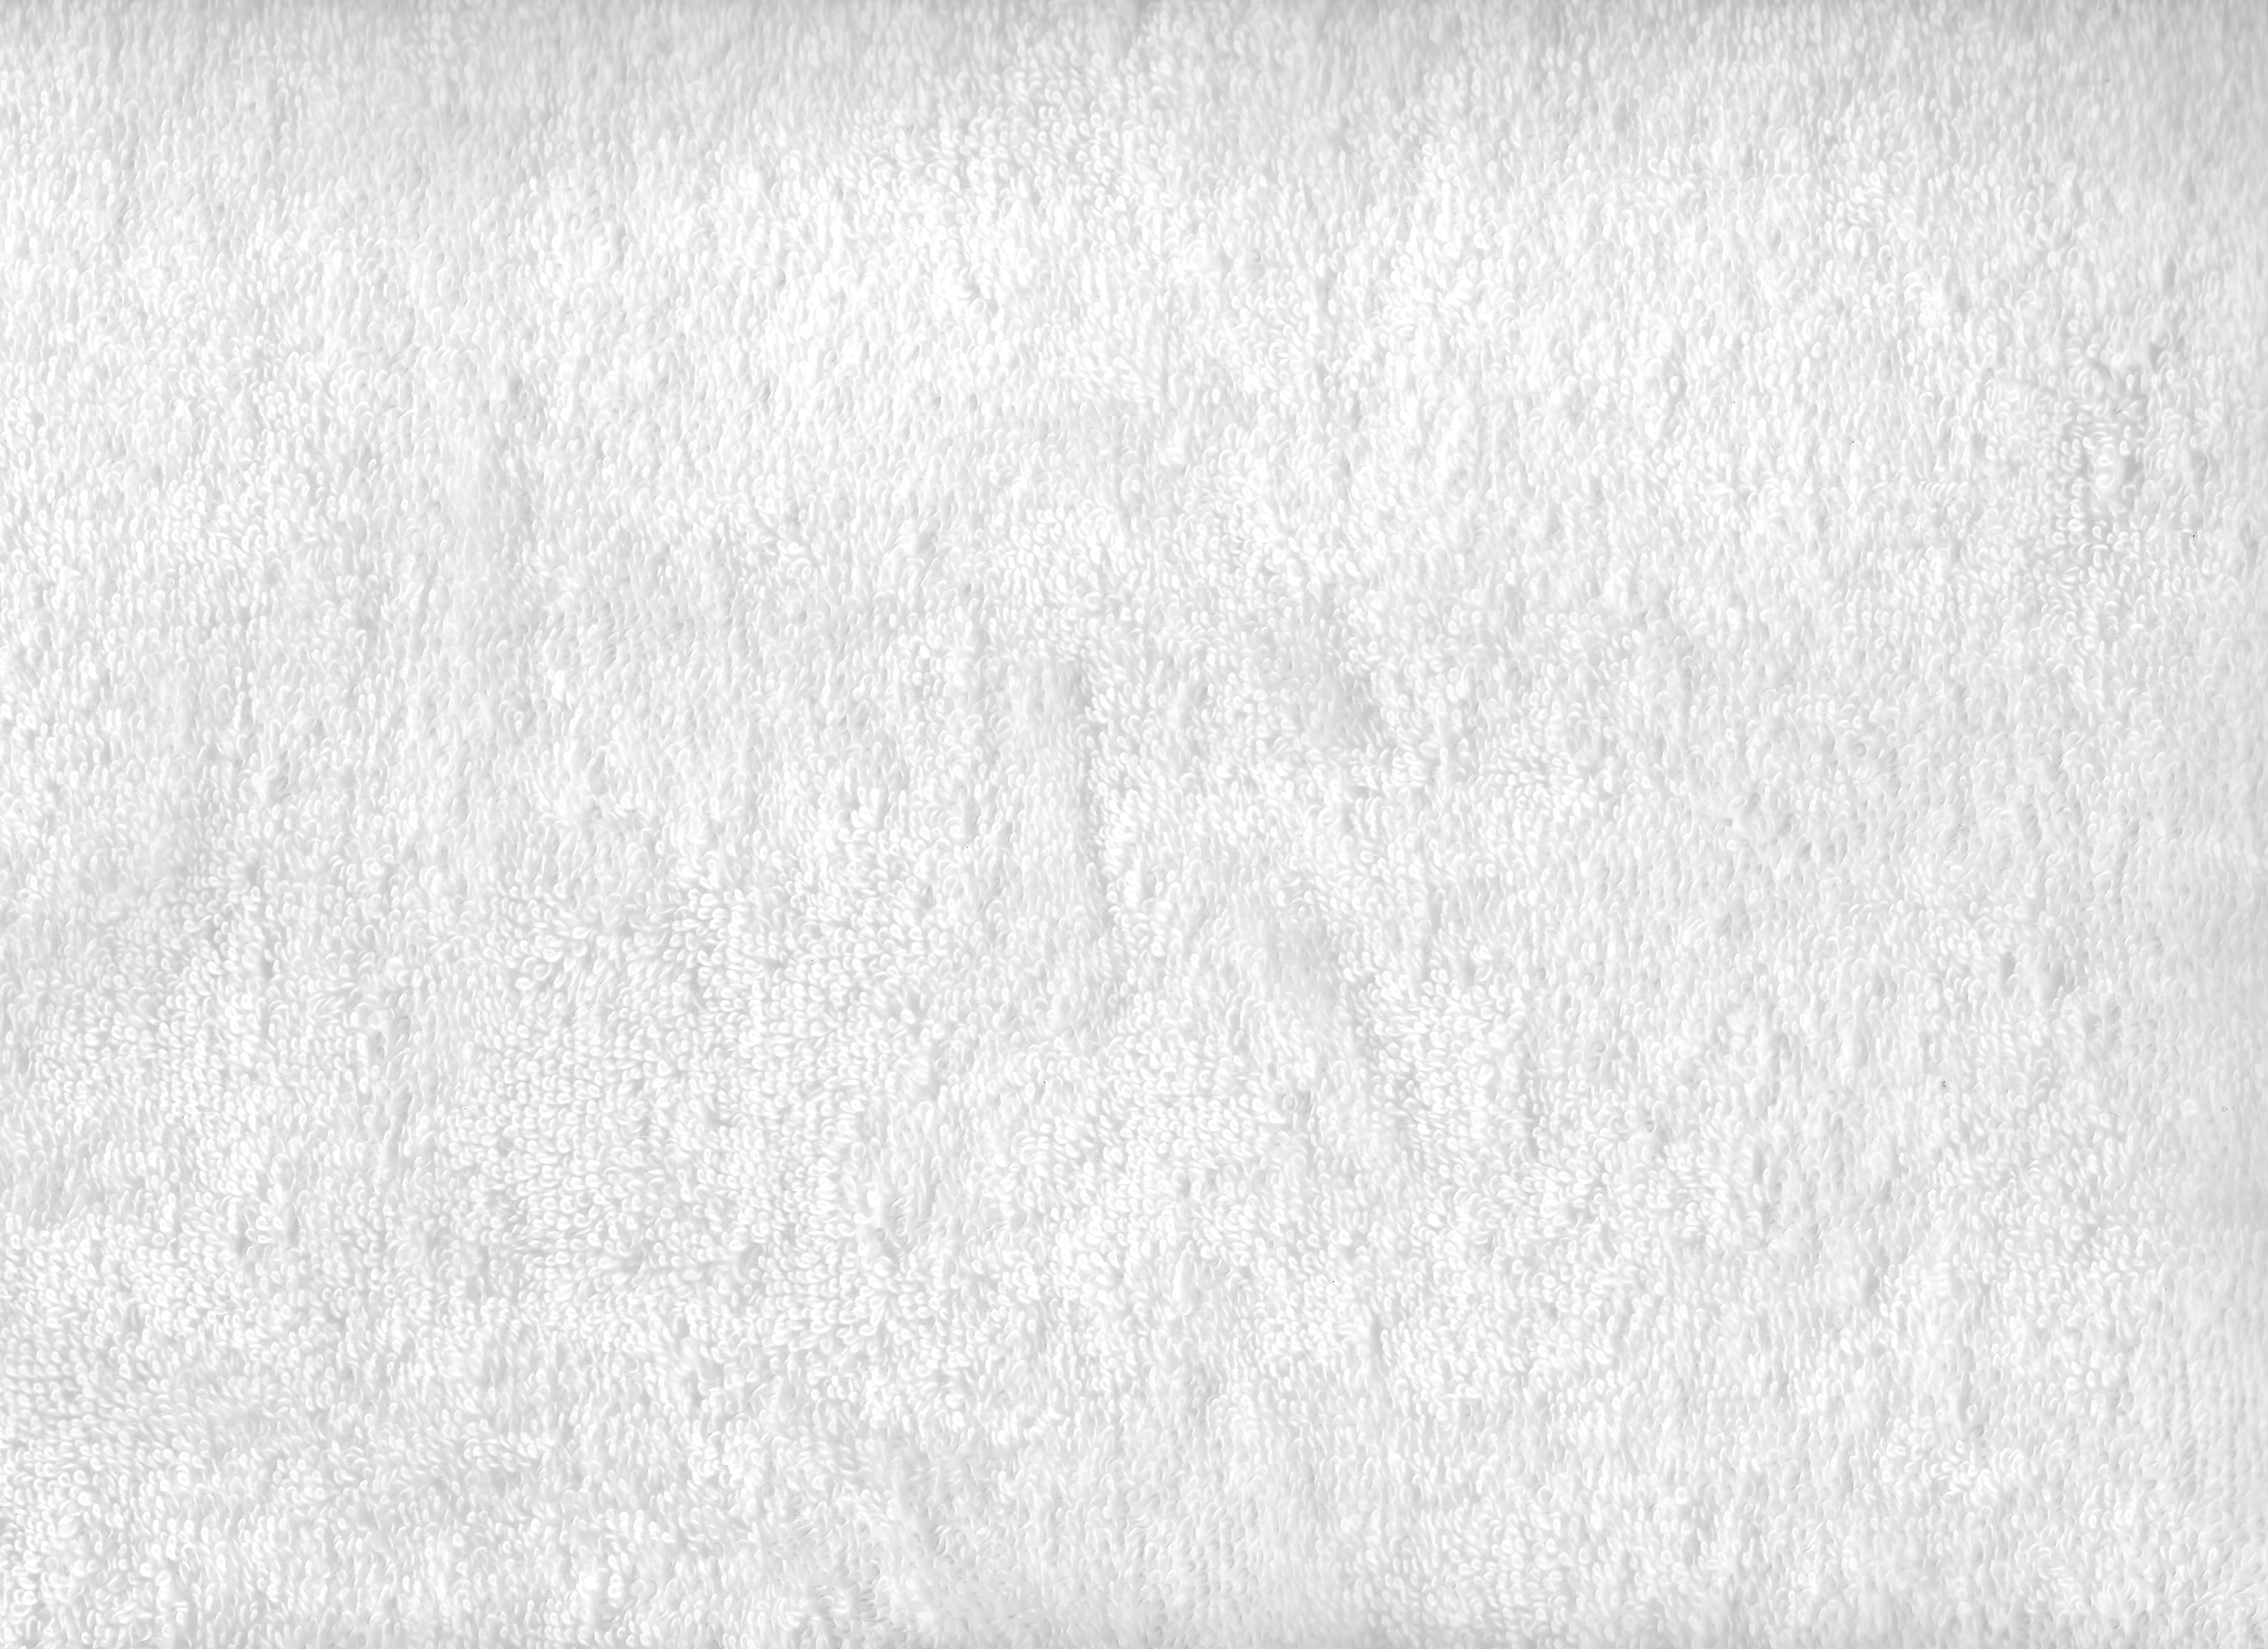 White Terry Cloth Towel Texture Picture Free Photograph